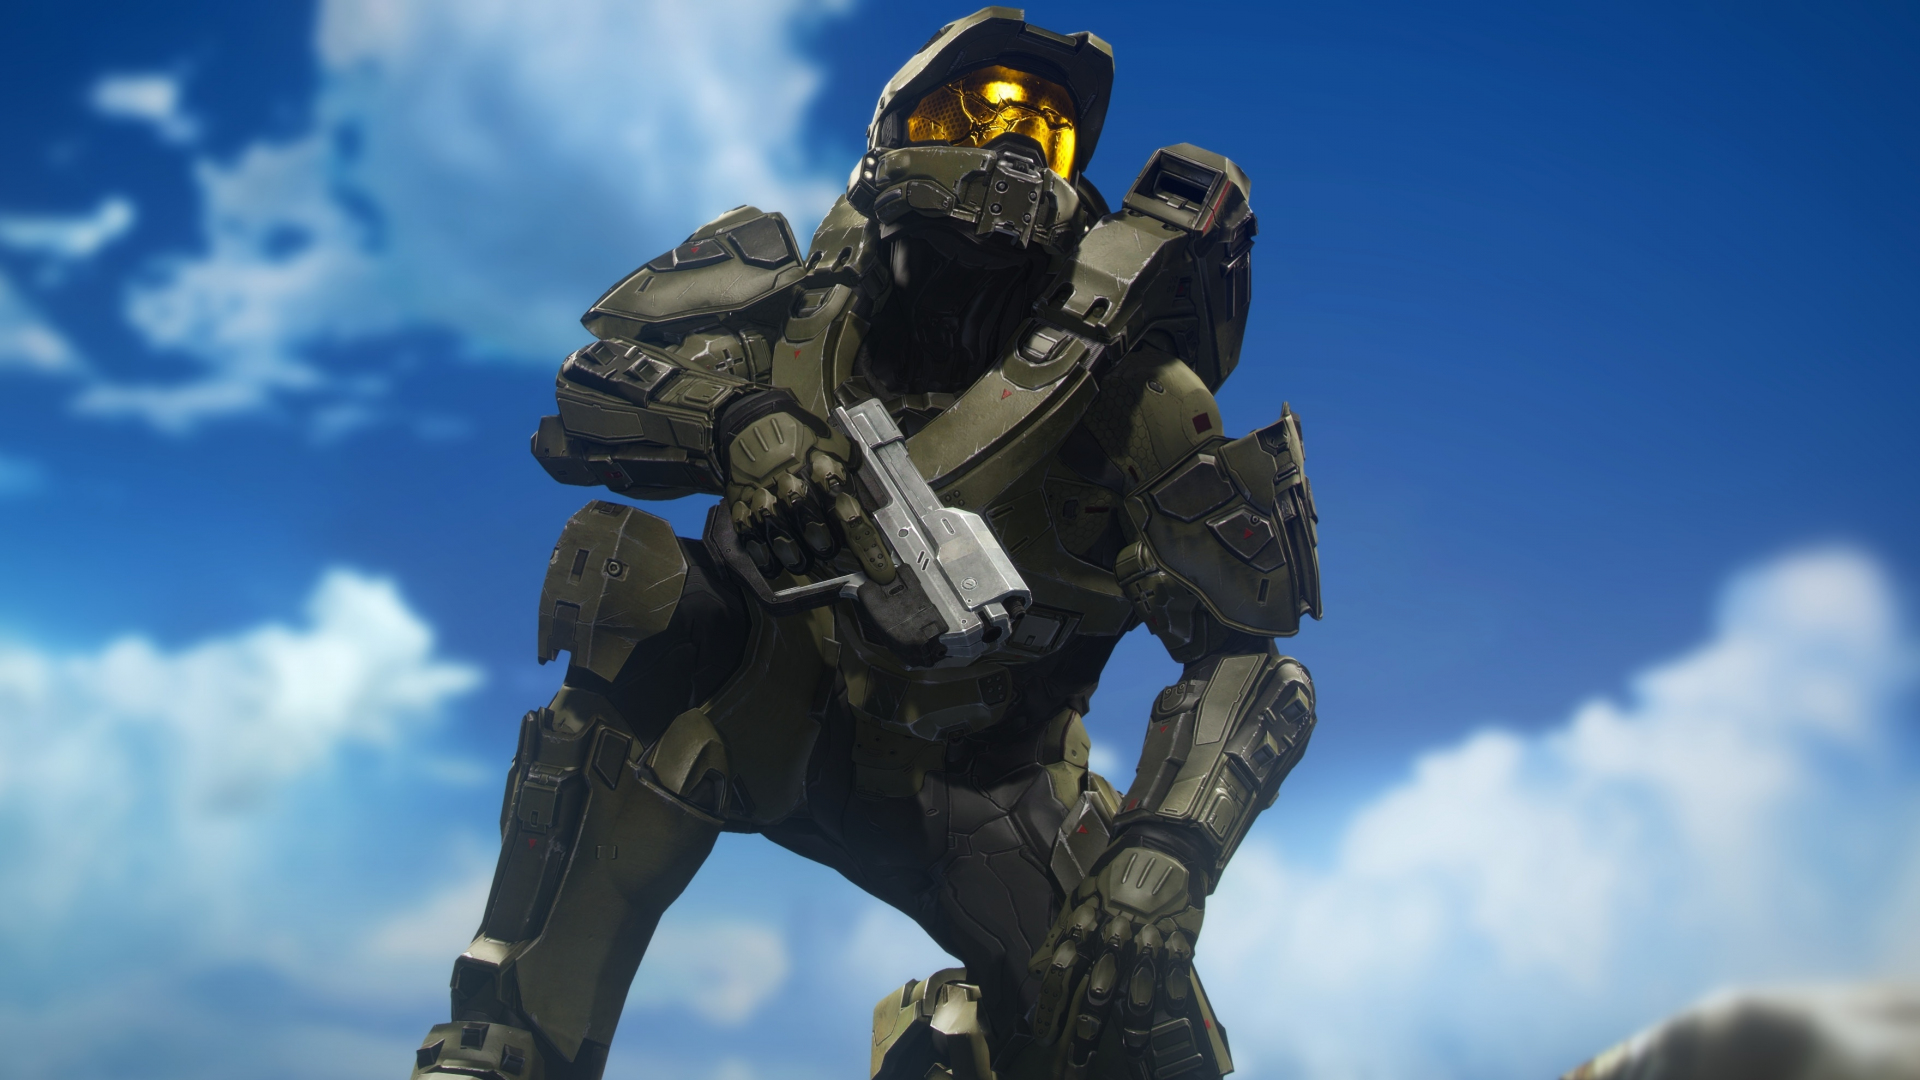 Download 1920x1080 Wallpaper Master Chief Halo Video Game Soldier Full Hd Hdtv Fhd 1080p 1920x1080 Hd Image Background 10603